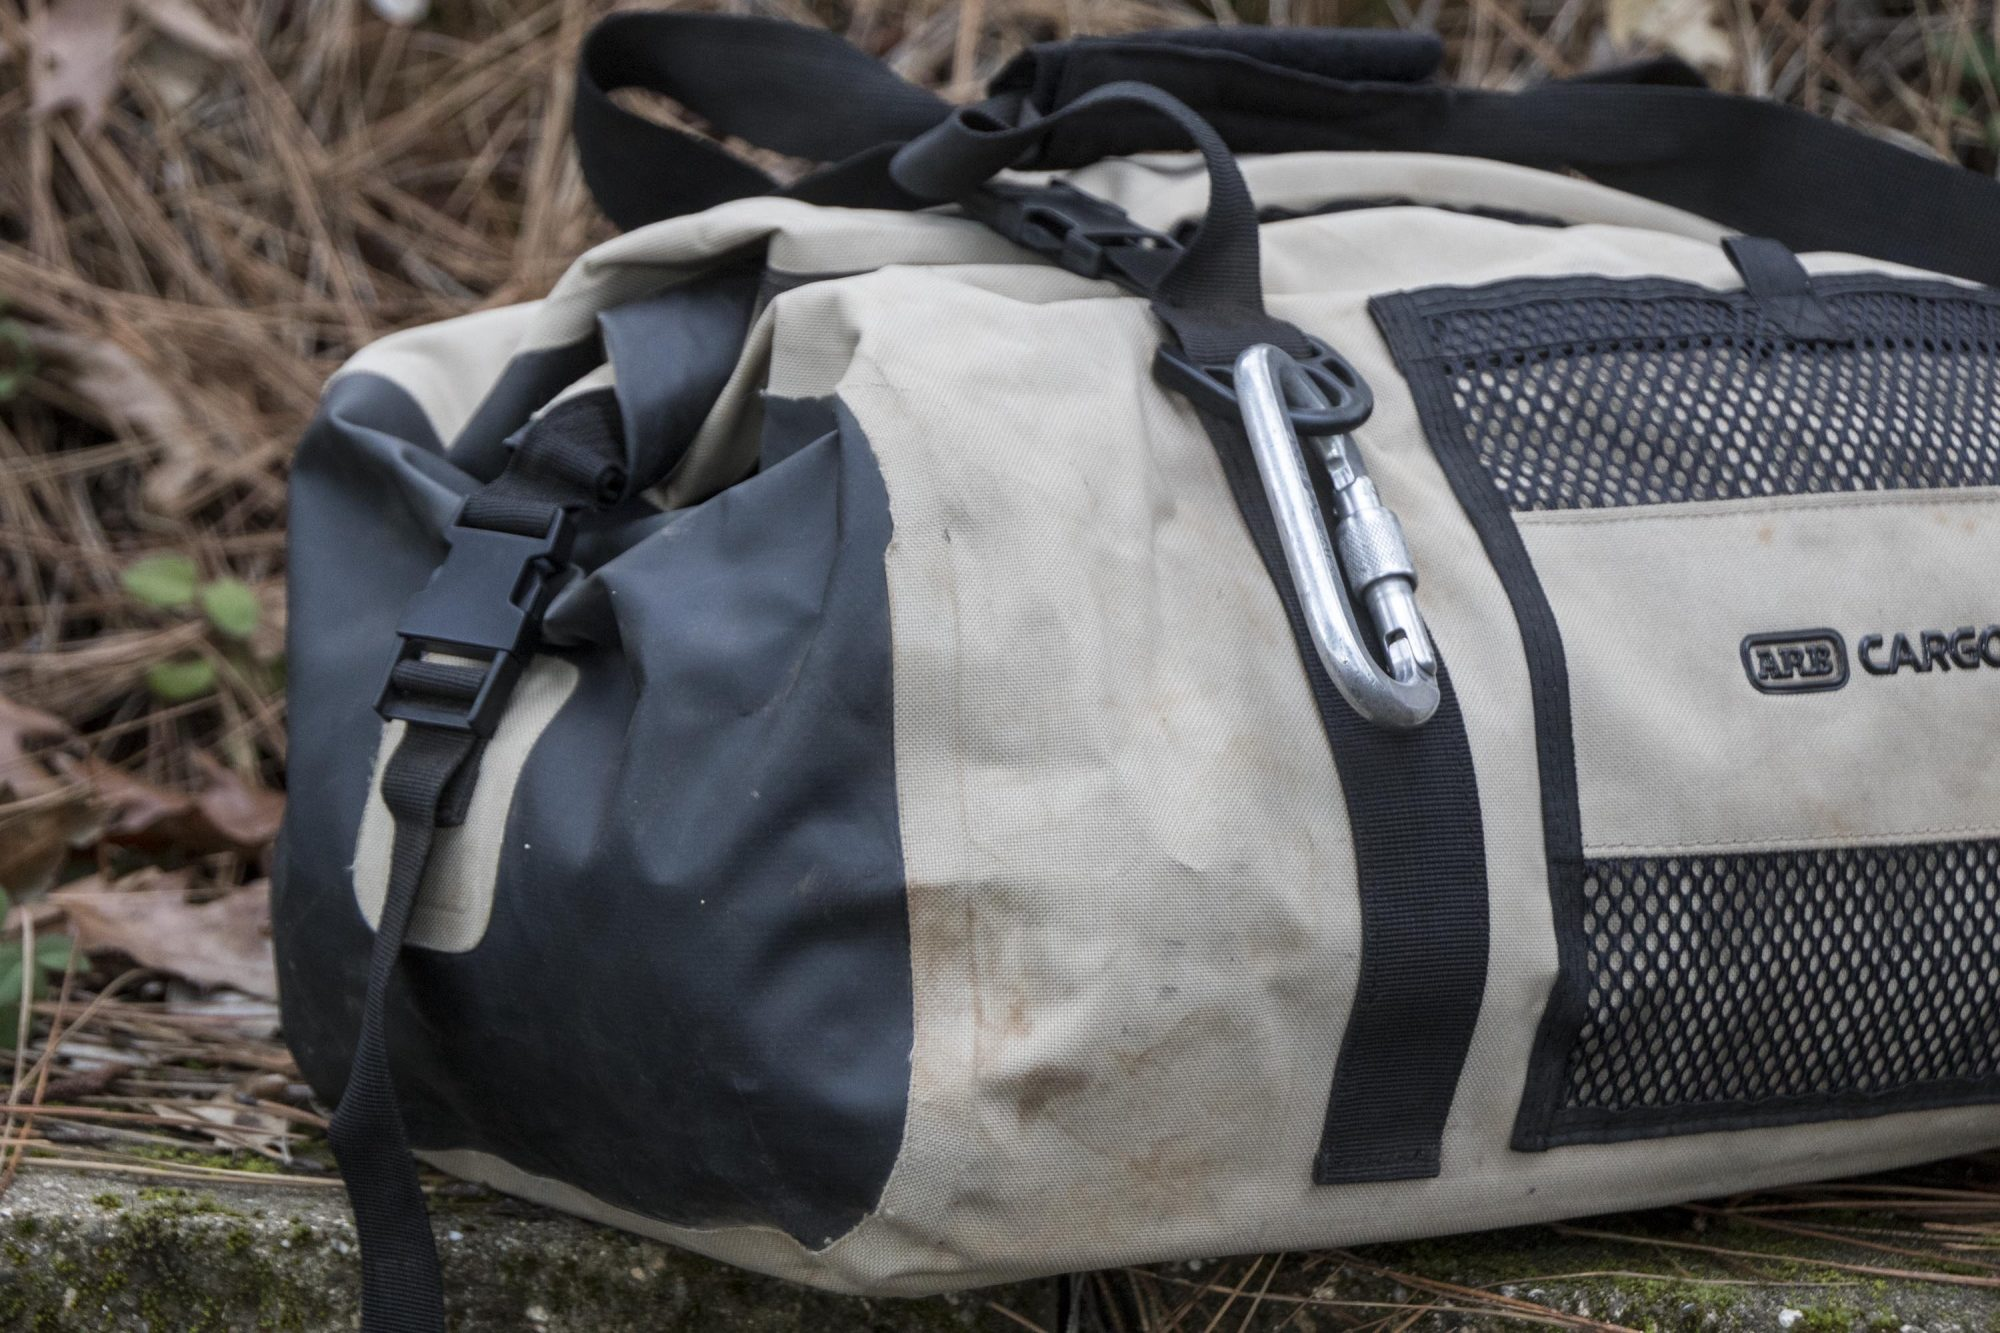 Field Tested Arb Cargo Gear Storm Bag Expedition Portal